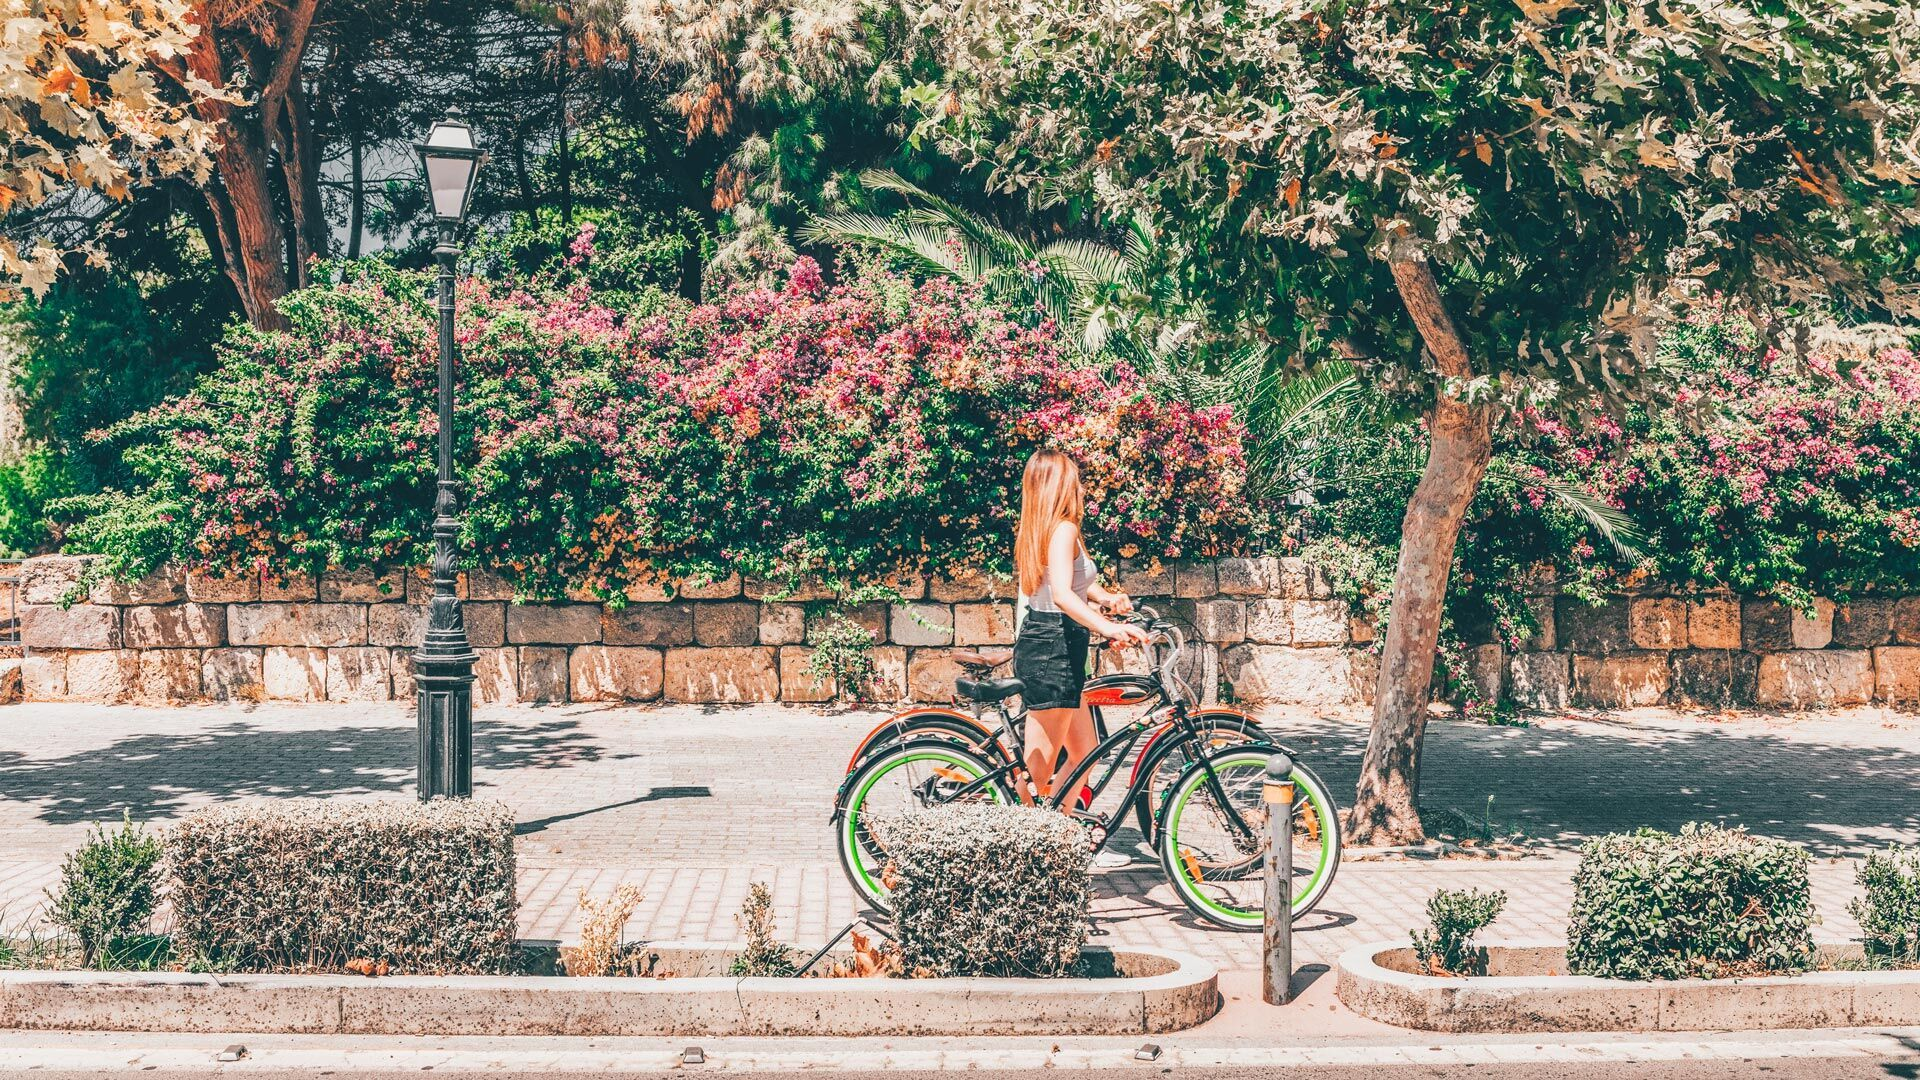 Kos is an ideal island for cycling lovers